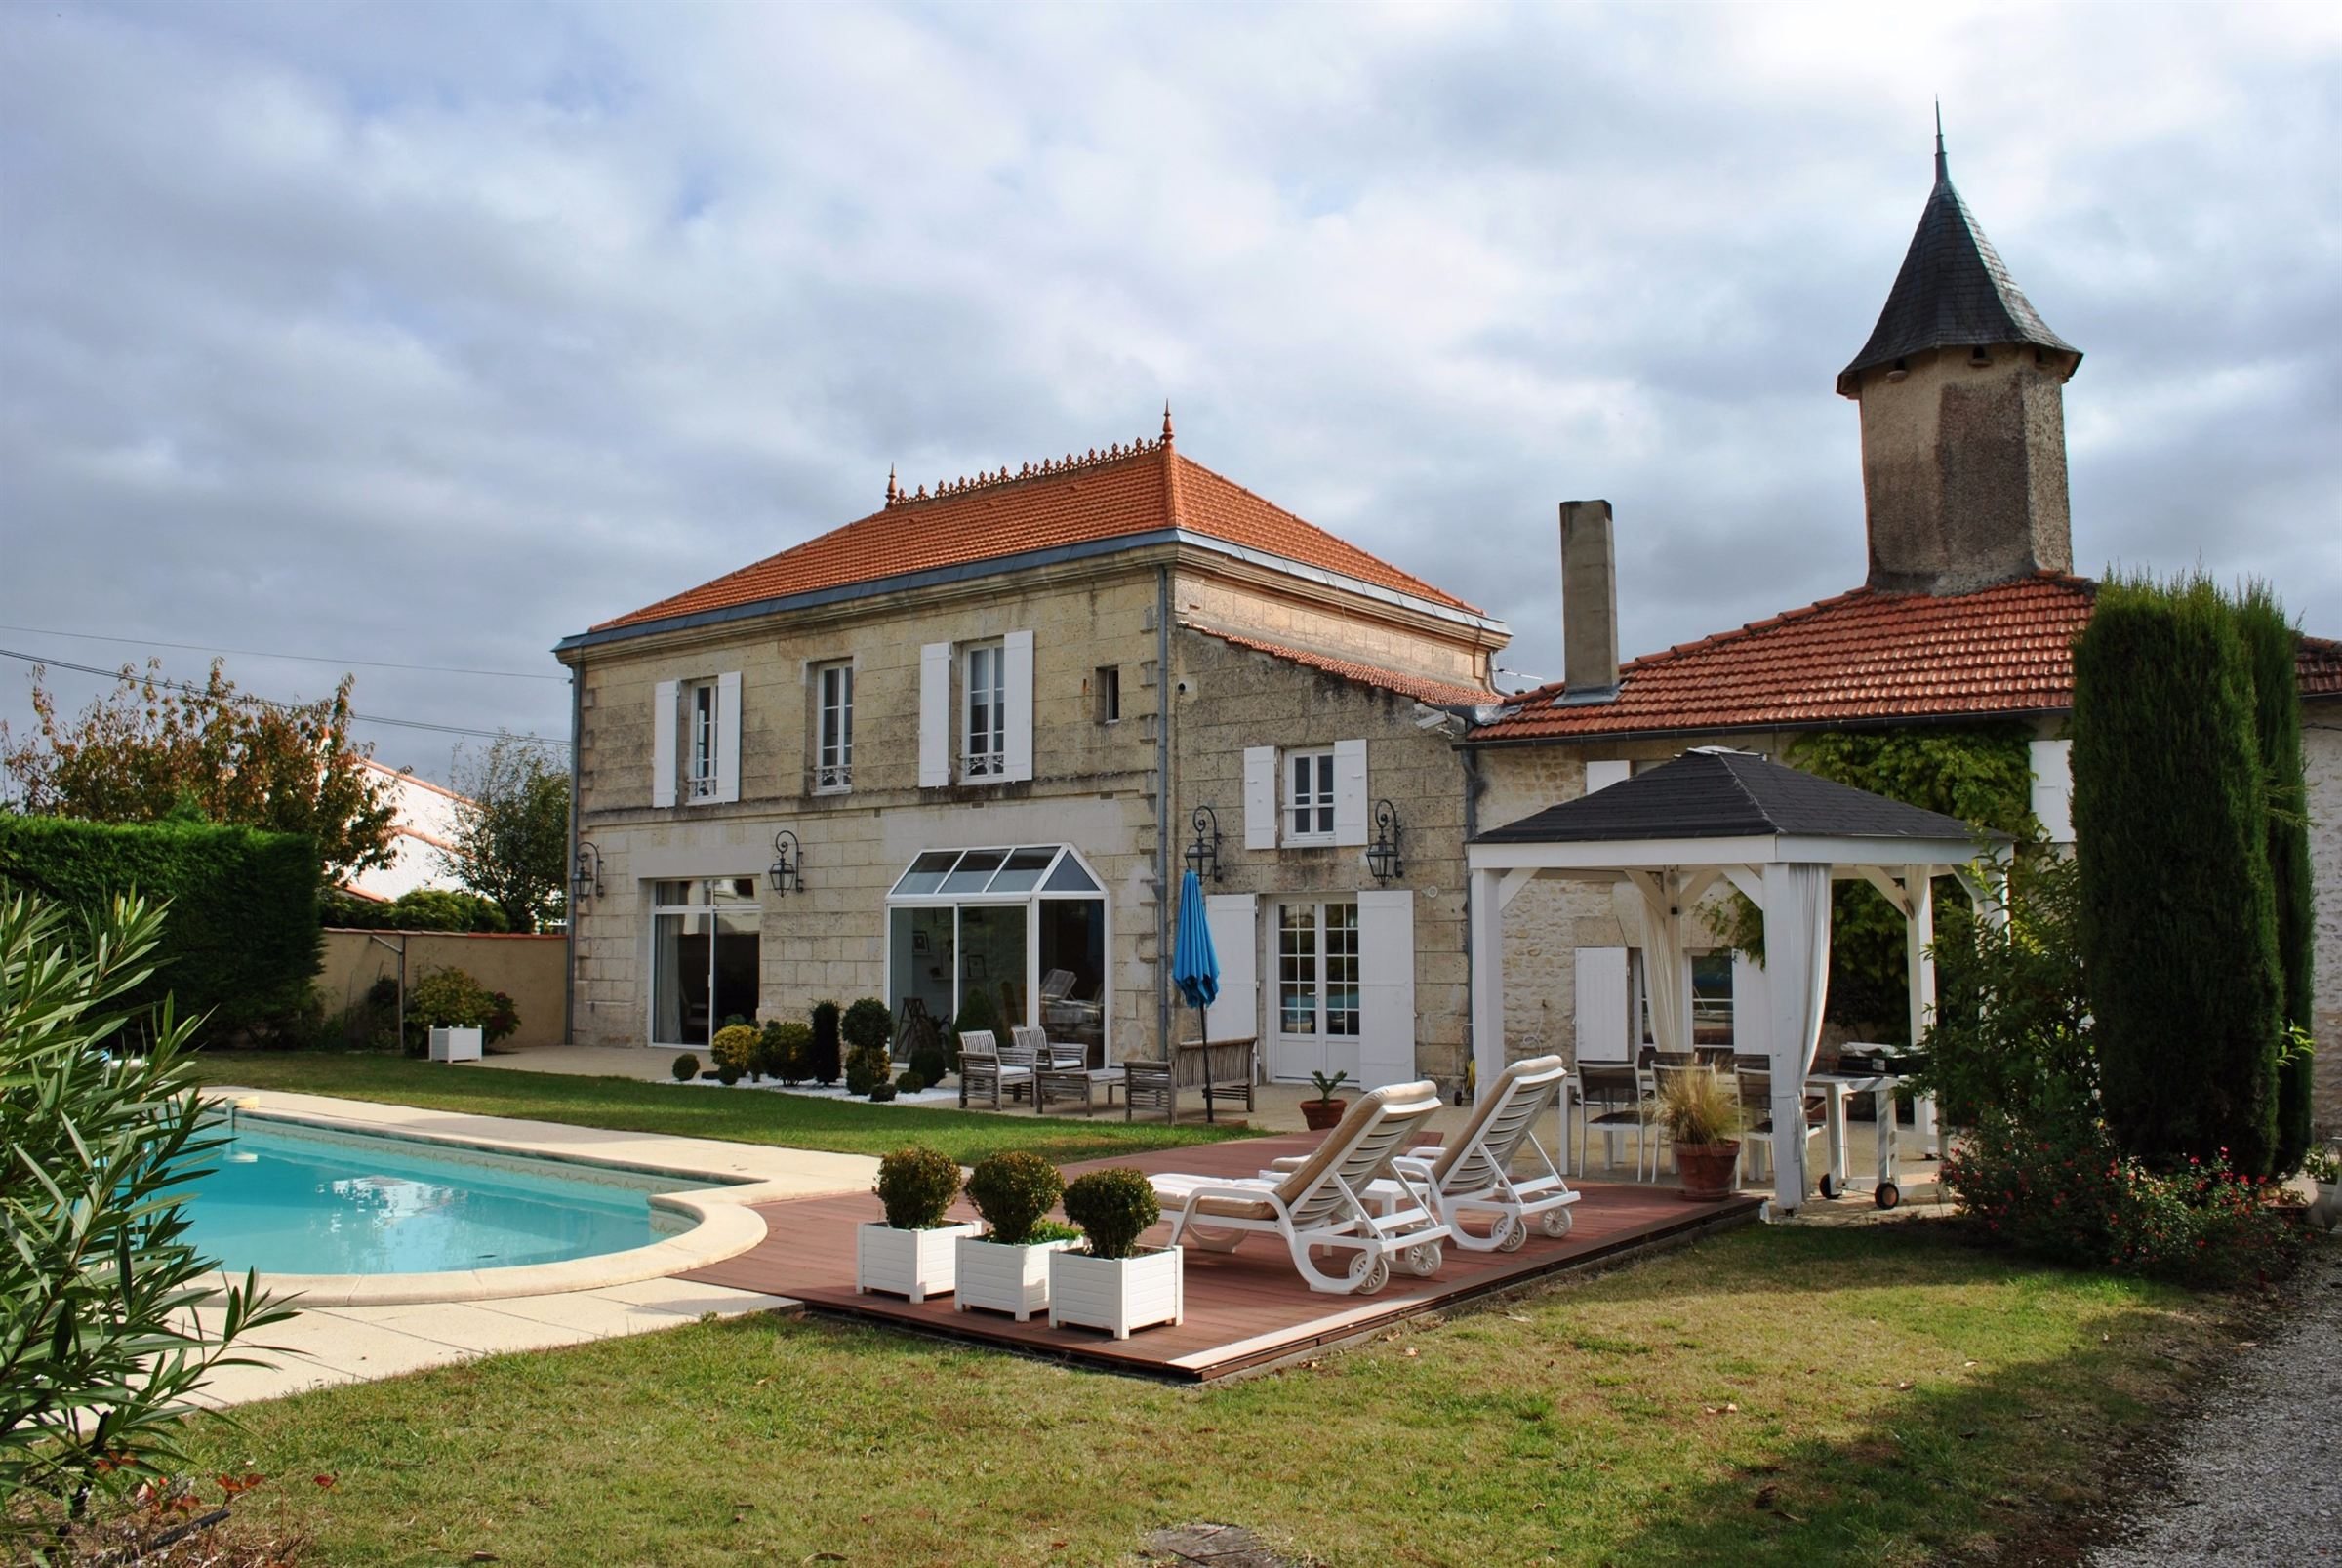 Property For Sale at Property - Saintes Town Centre